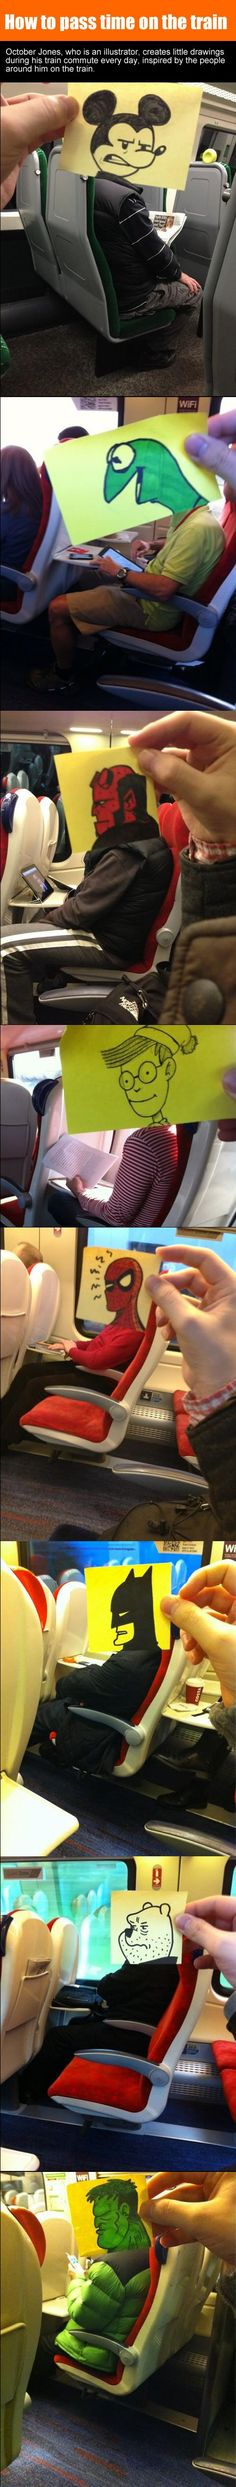 Illustrator Made Funny Doodles During His Train Commute Everyday.